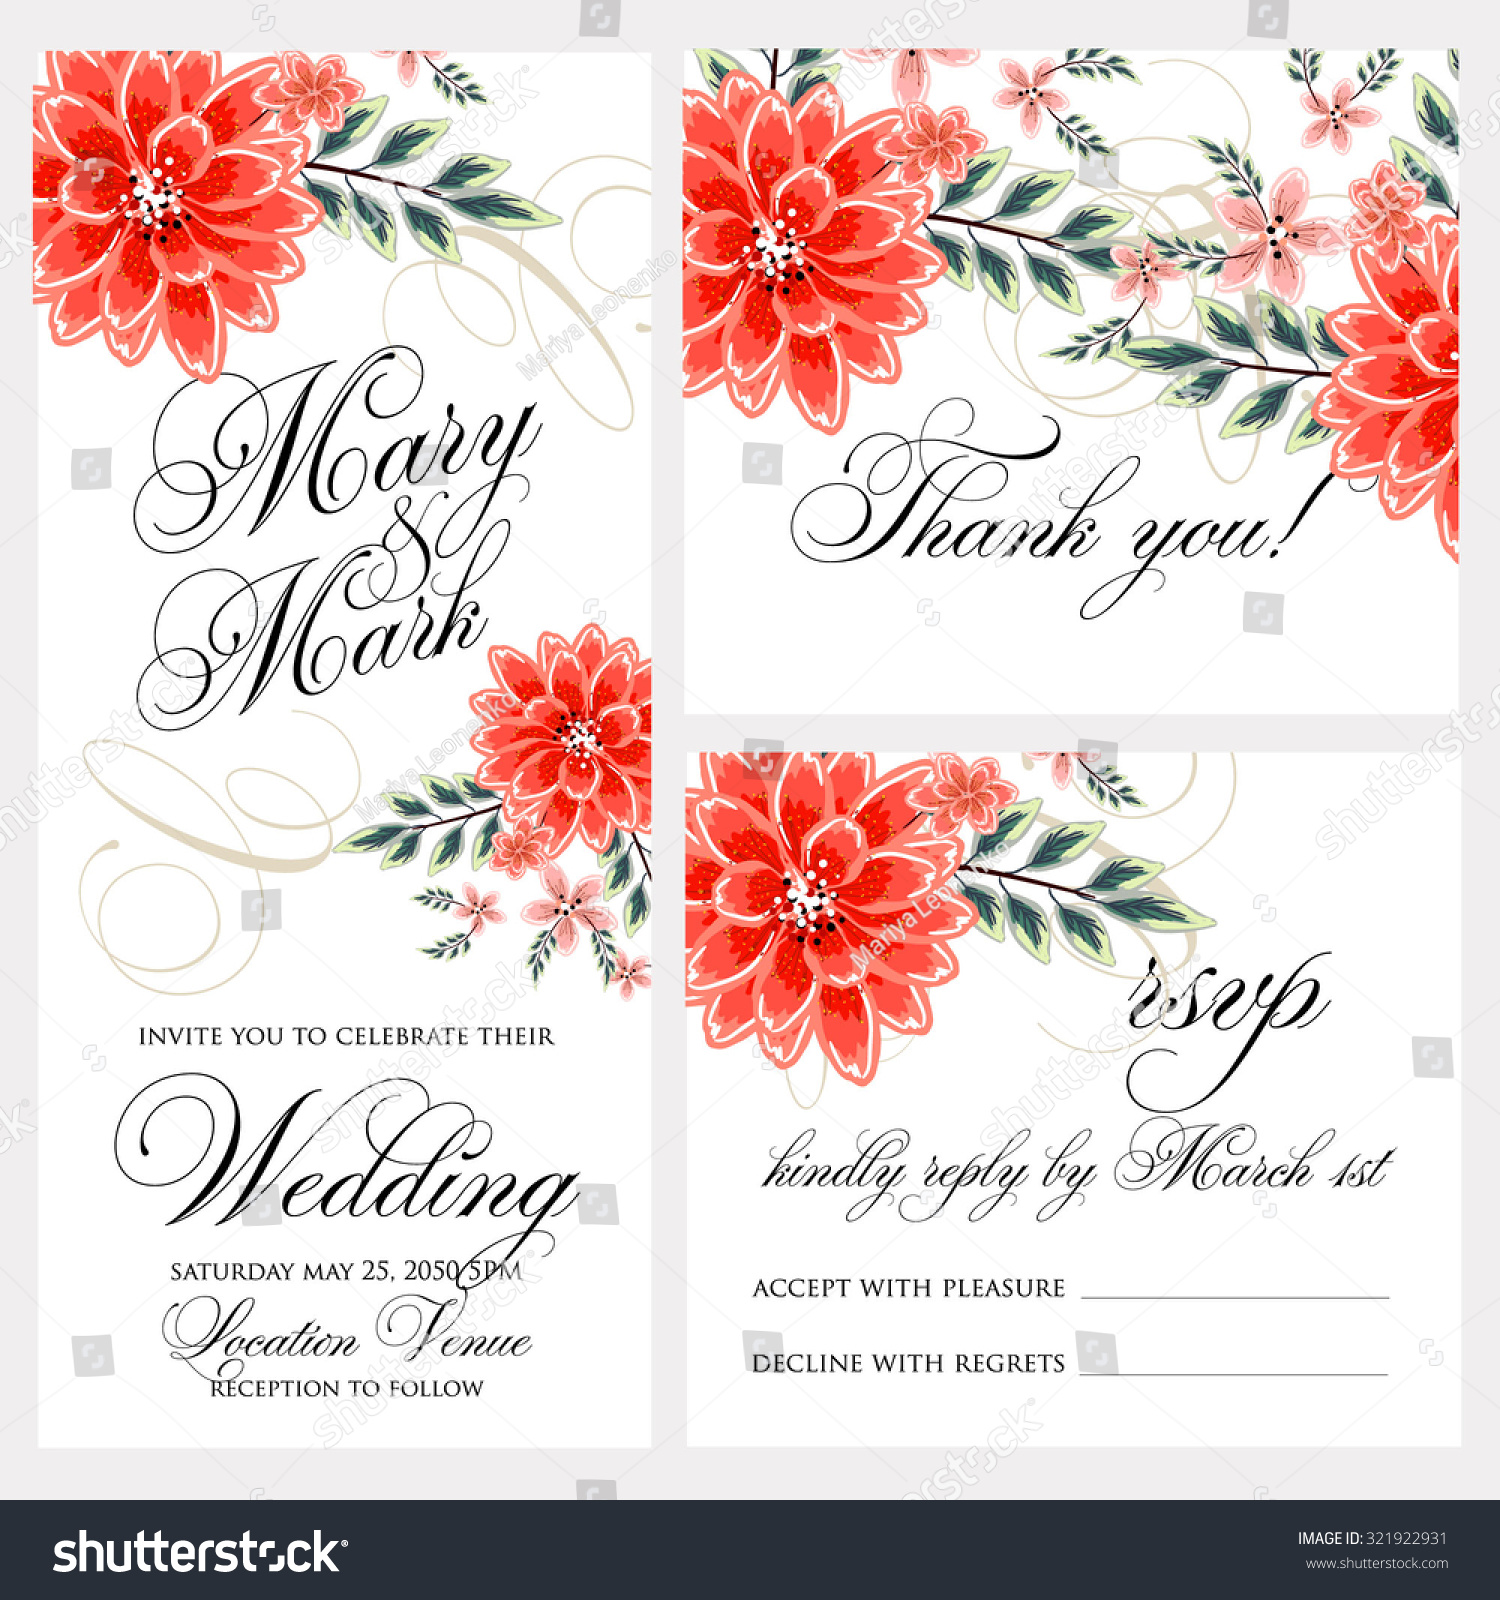 Wedding Invitation Thank You Card Save Stock Photo (Photo, Vector ...